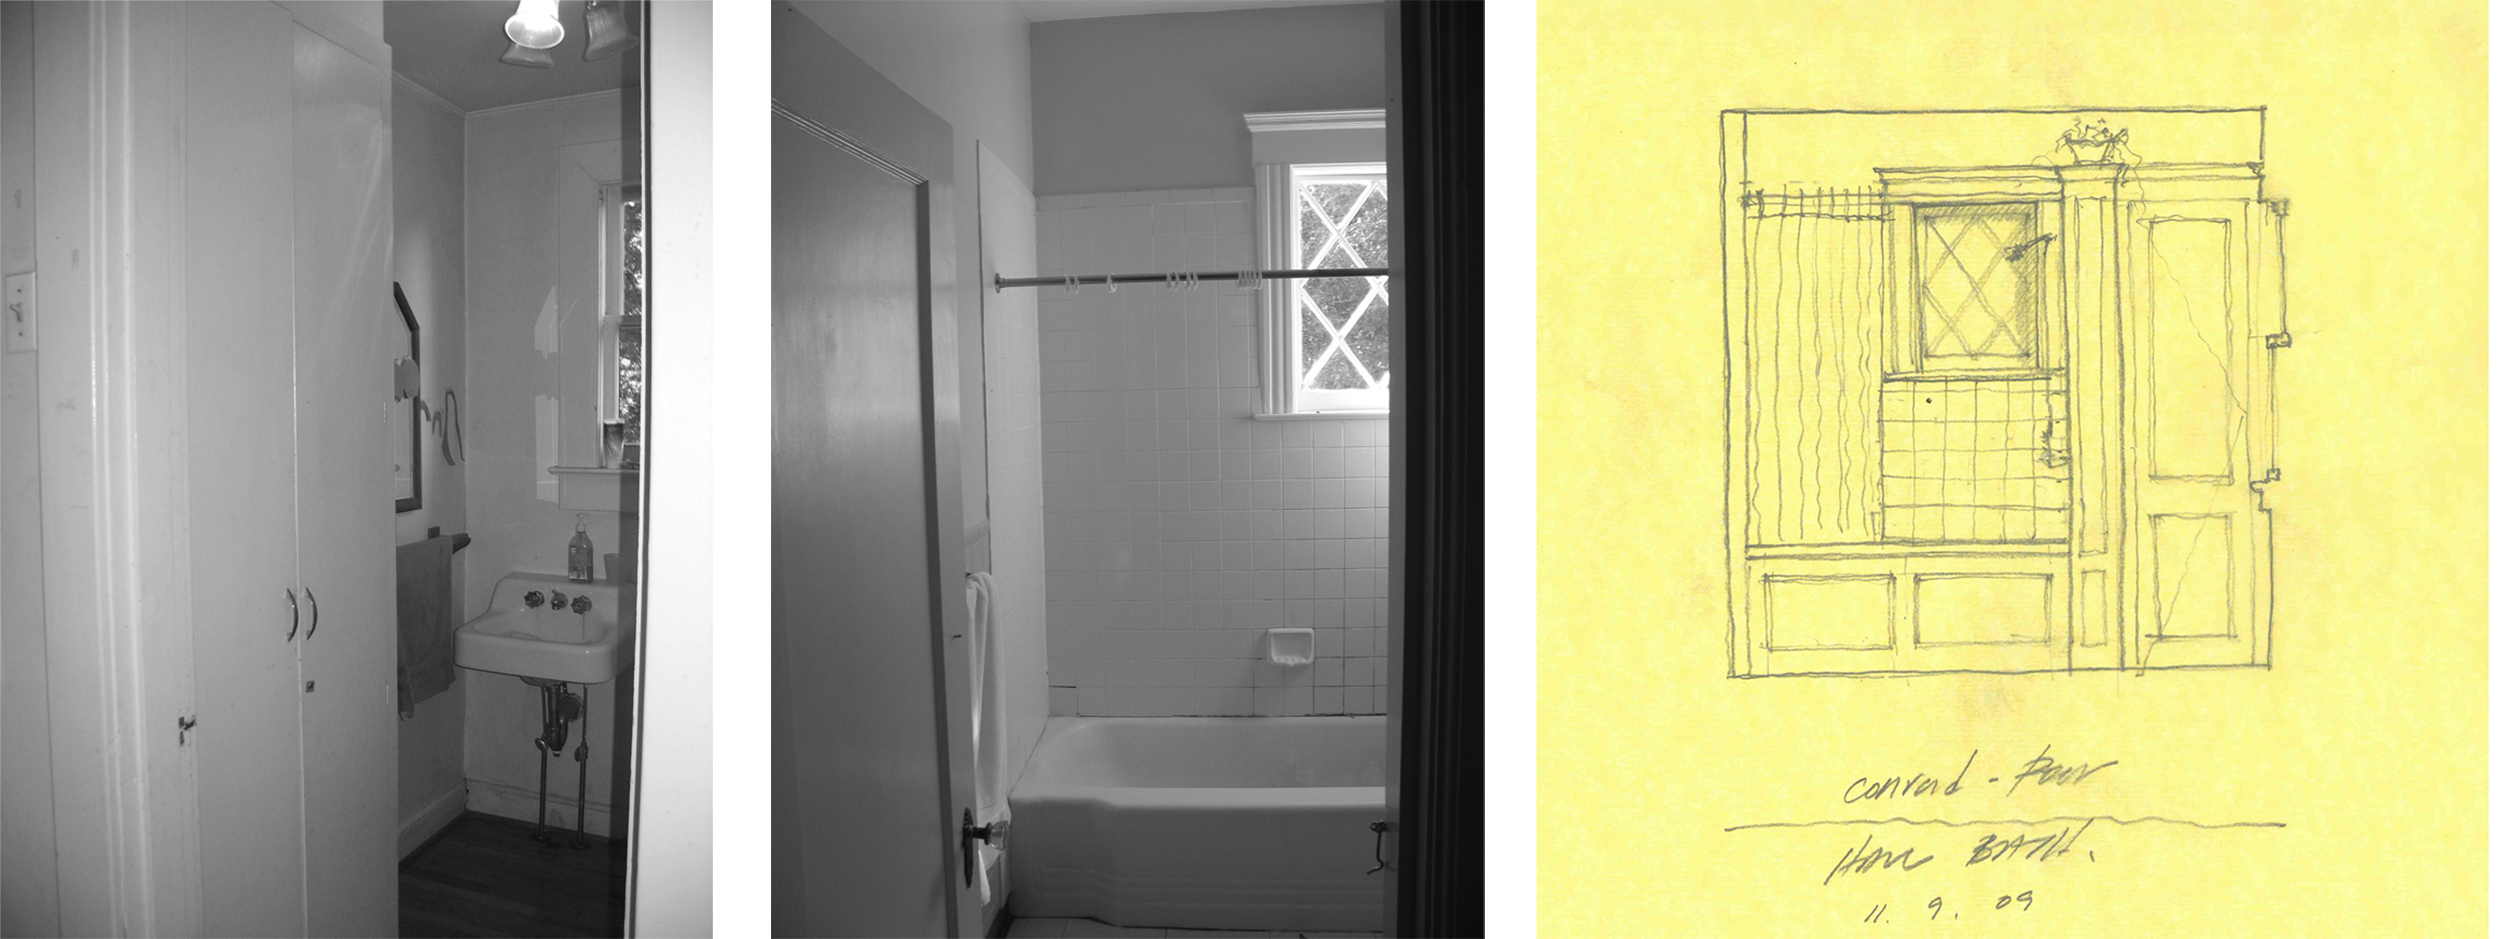 Powder room and third floor bathroom, (before renovation) with schematic drawing by Marvin Clawson of new third floor bathroom